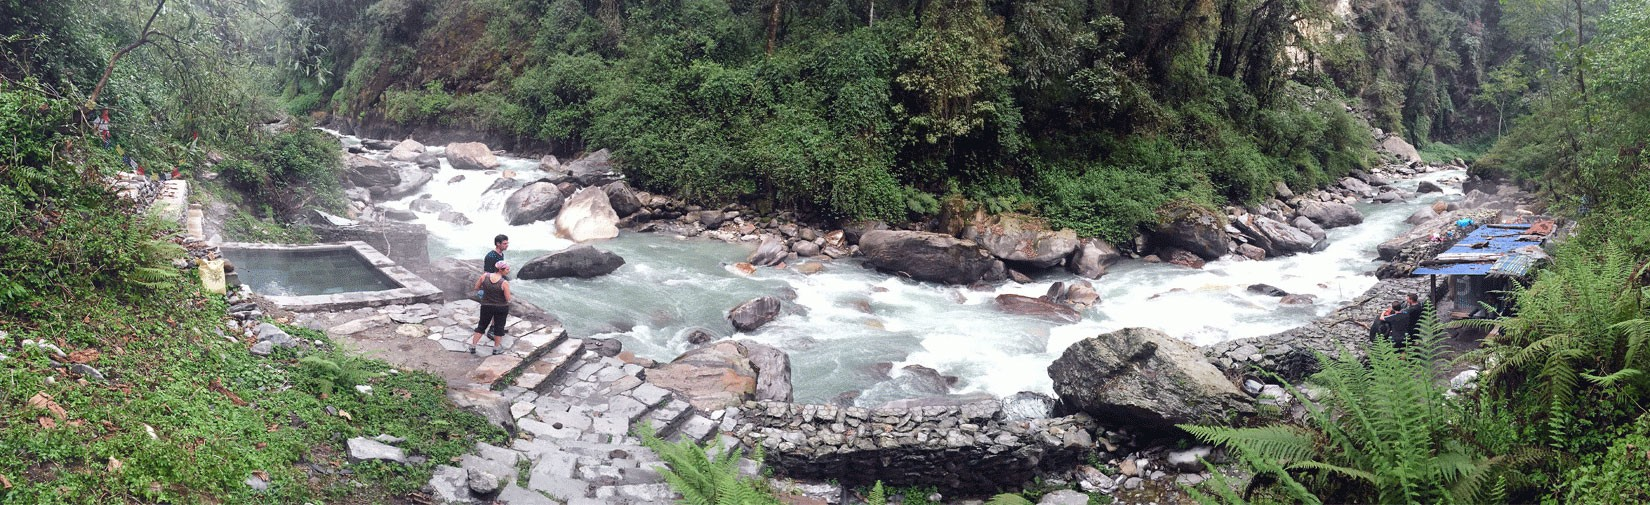 Modi_River_and_Hot_Spring_-_Annapurna_Conservation_Area